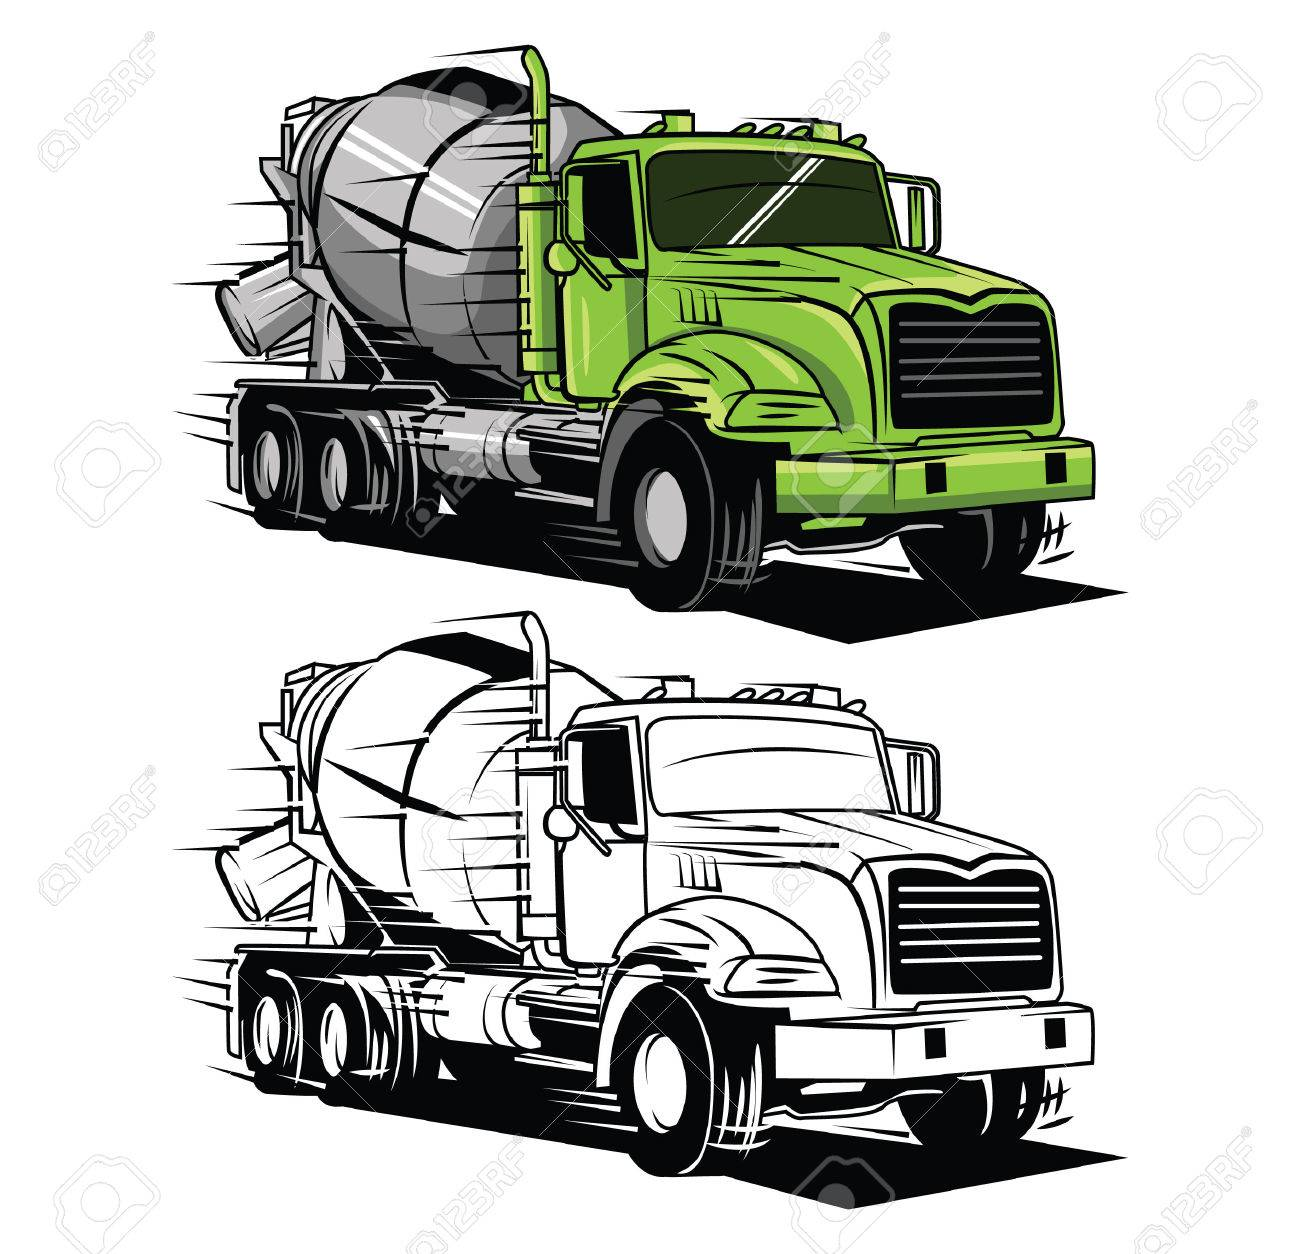 hight resolution of coloring book big truck cartoon character illustration